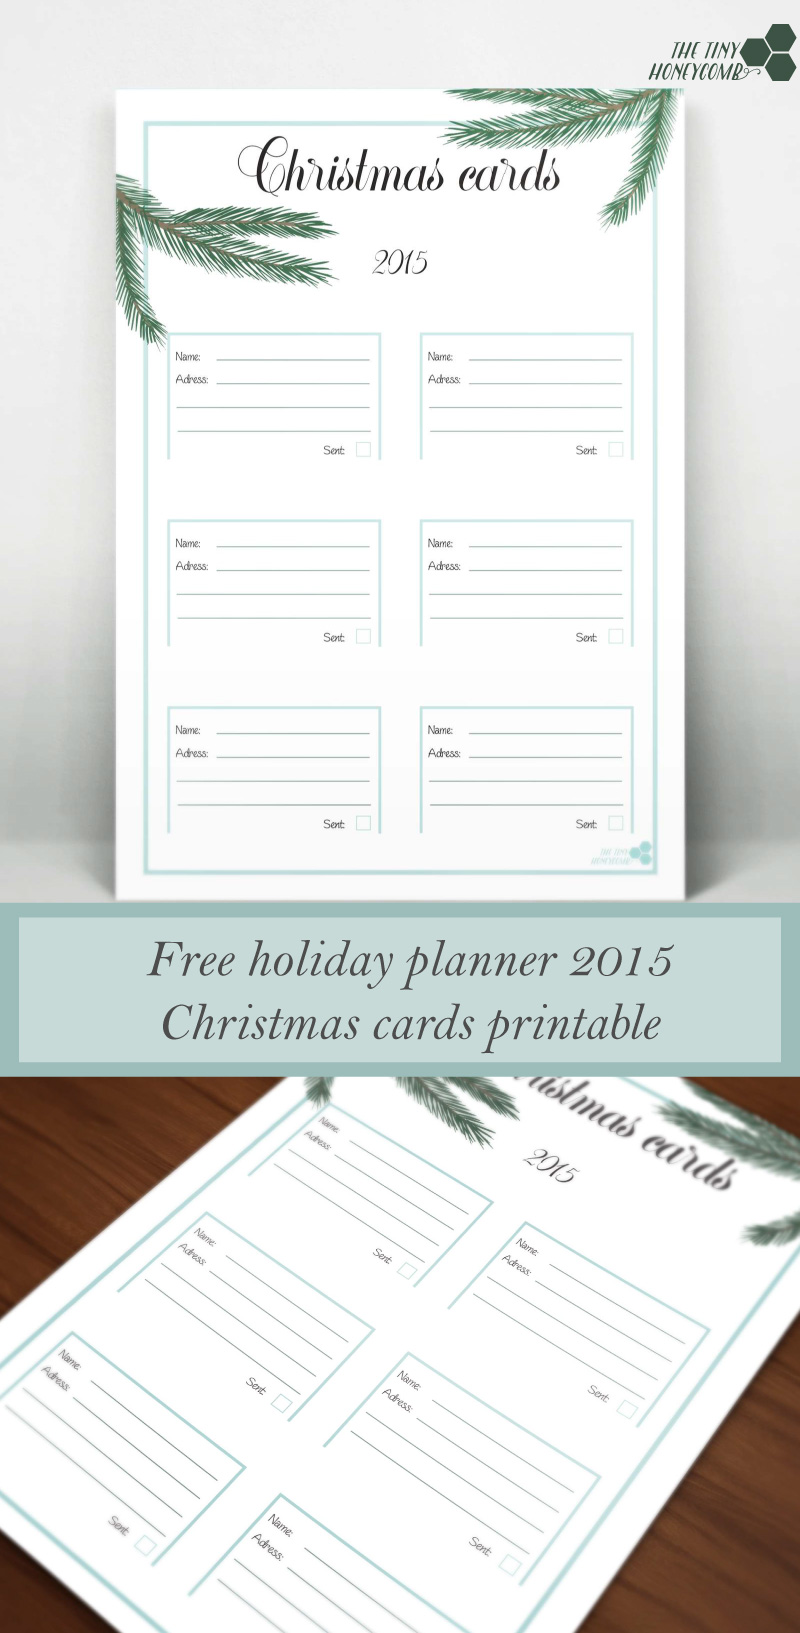 Christmas planner 2015. Free printables - Christmas cards. Getting organized this christmas.